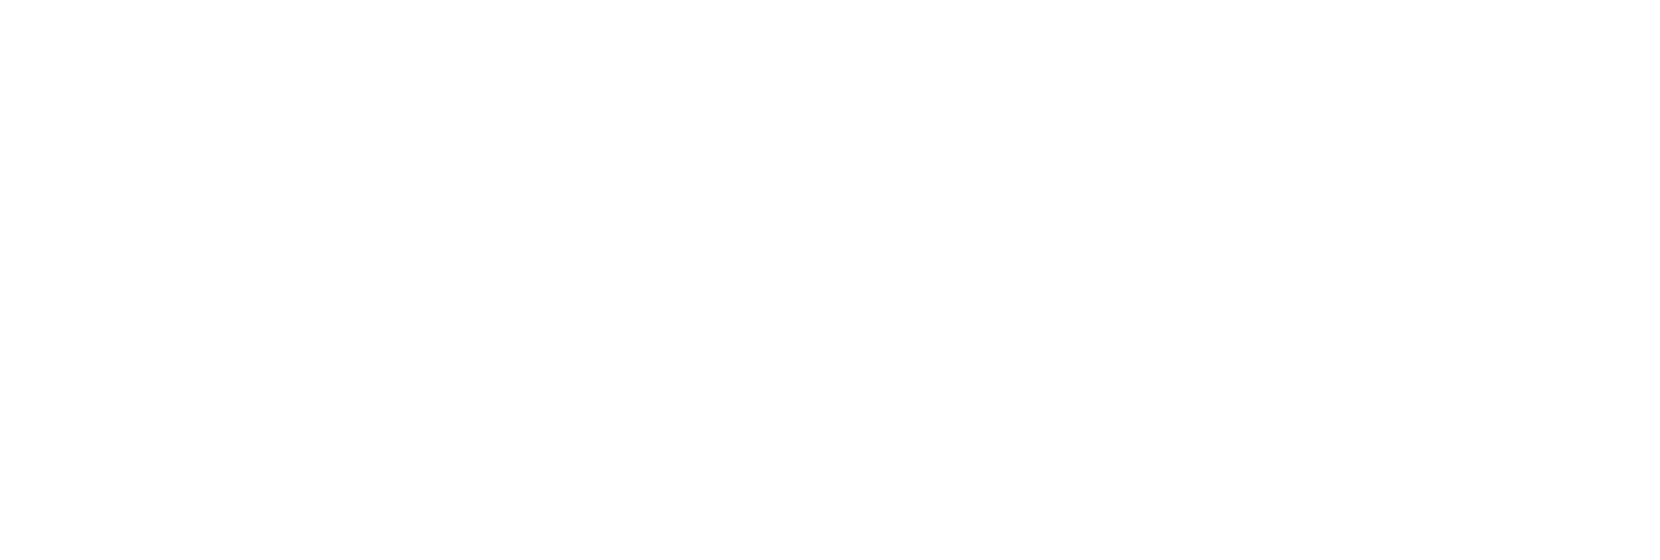 Carrefour Global Sourcing